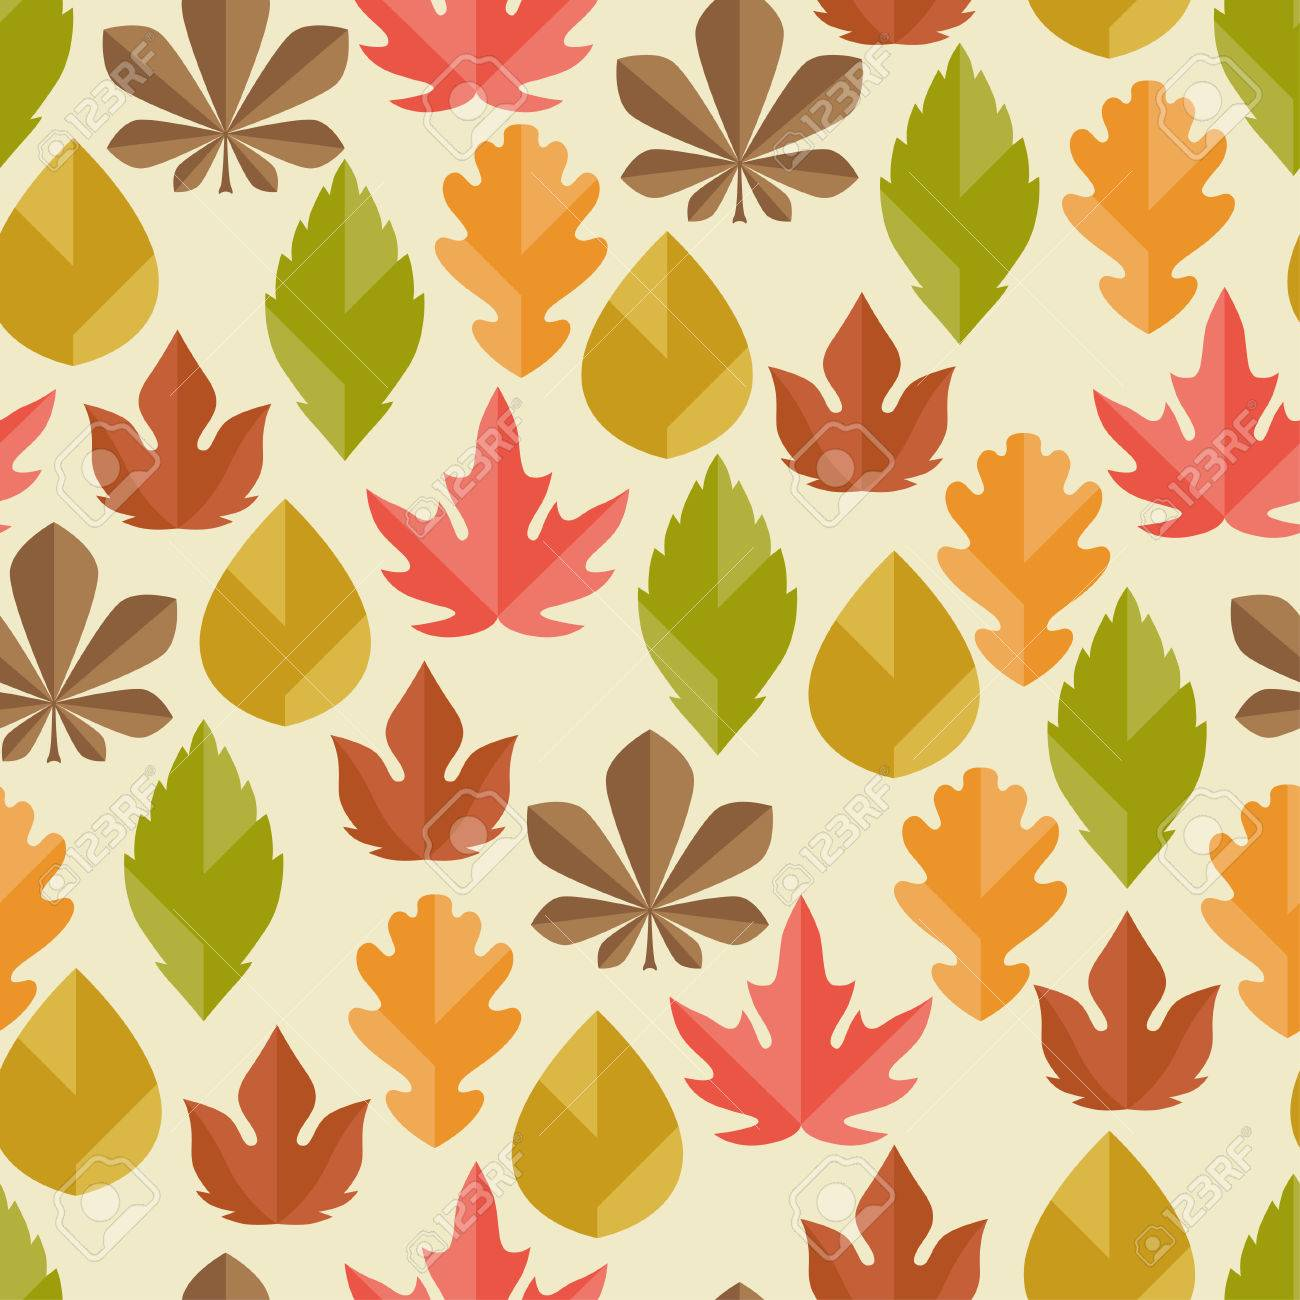 Seamless pattern with autumn leaves. Stock Vector - 22483297